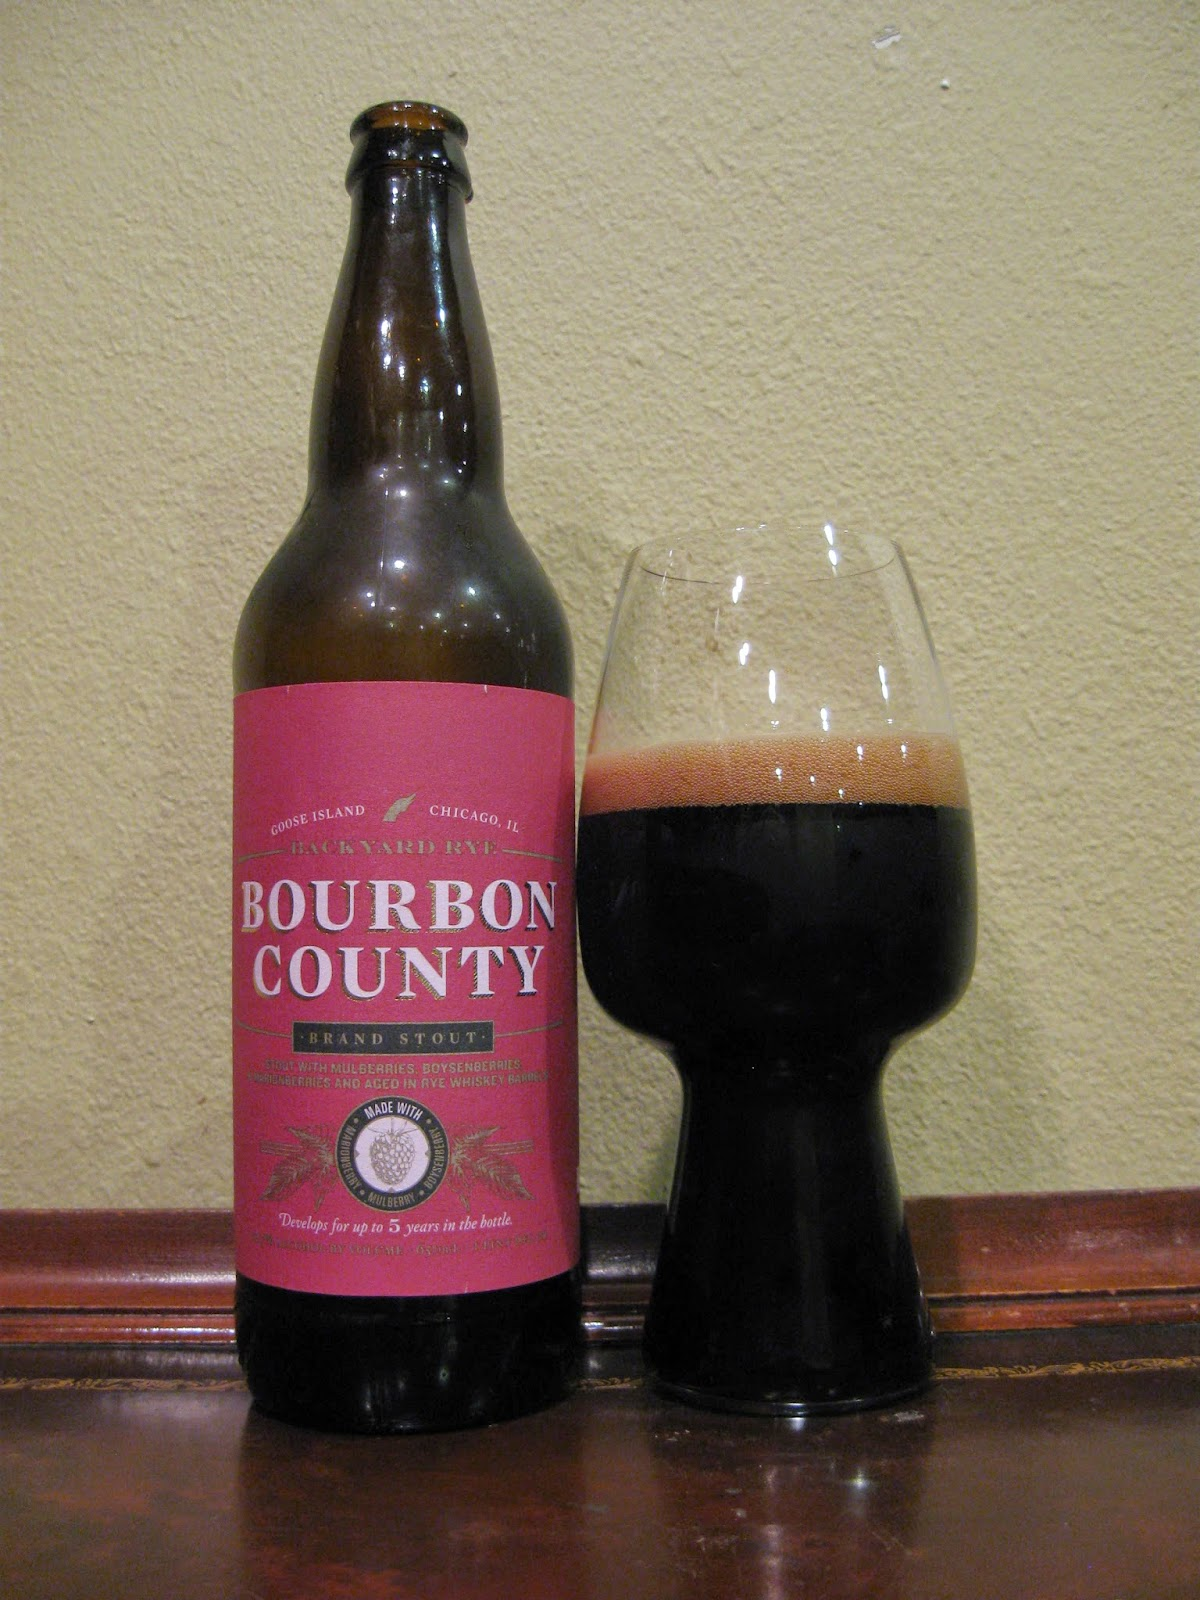 Bourbon County Backyard Rye doing beer justice: goose island bourbon county brand backyard rye stout